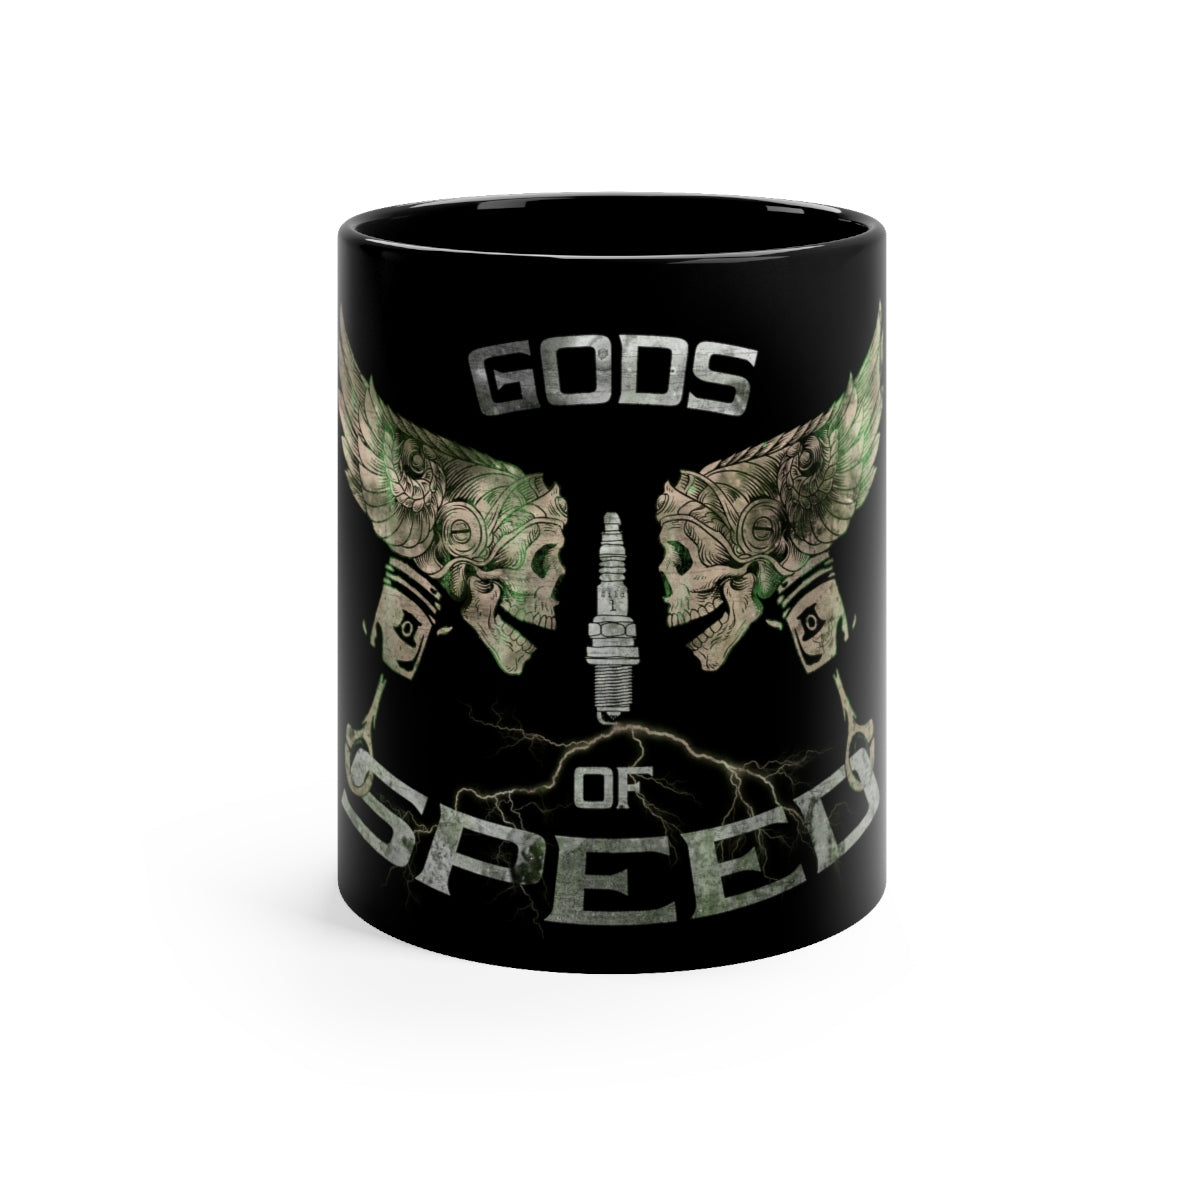 Gods of Speed - Black mug 11oz